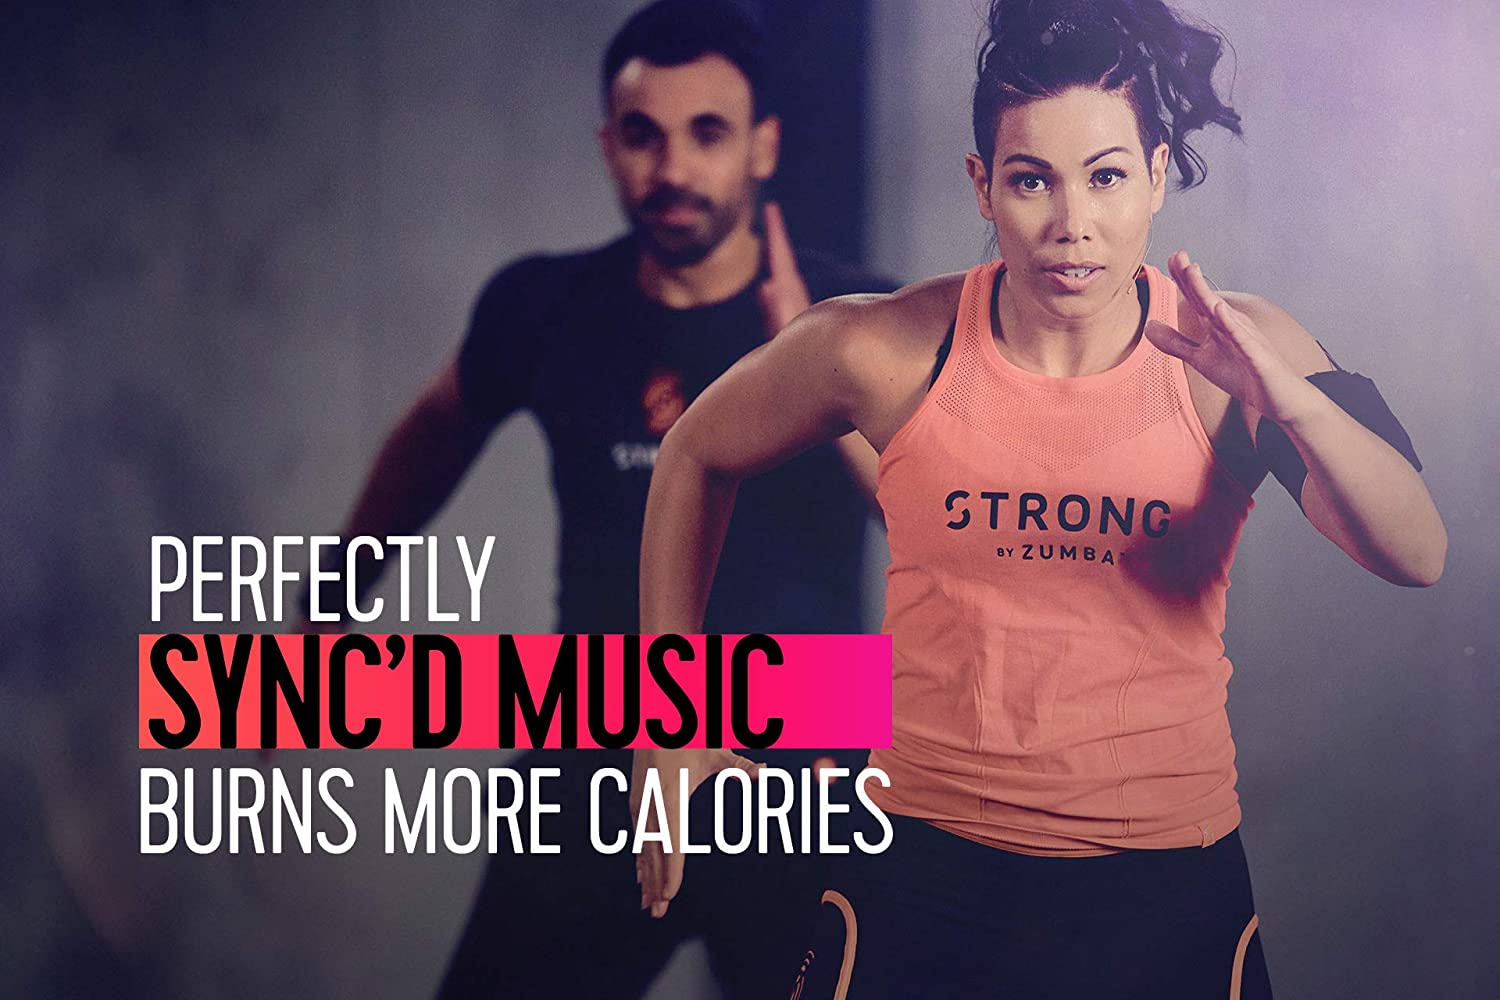 strong by zumba download uk